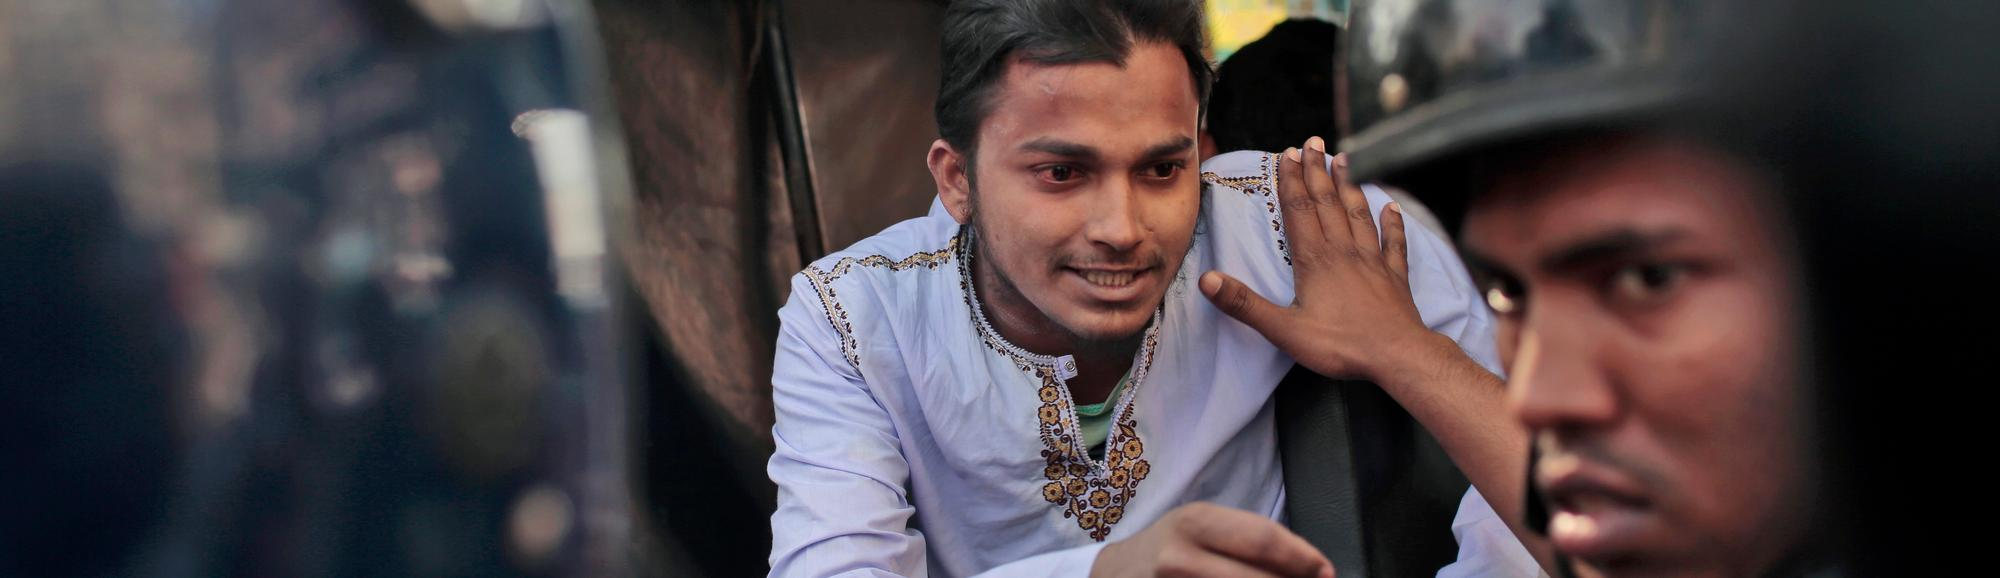 'Shoot Arsonists on Sight': Political Crisis in Bangladesh Leads to Violence and 7,500 Arrests